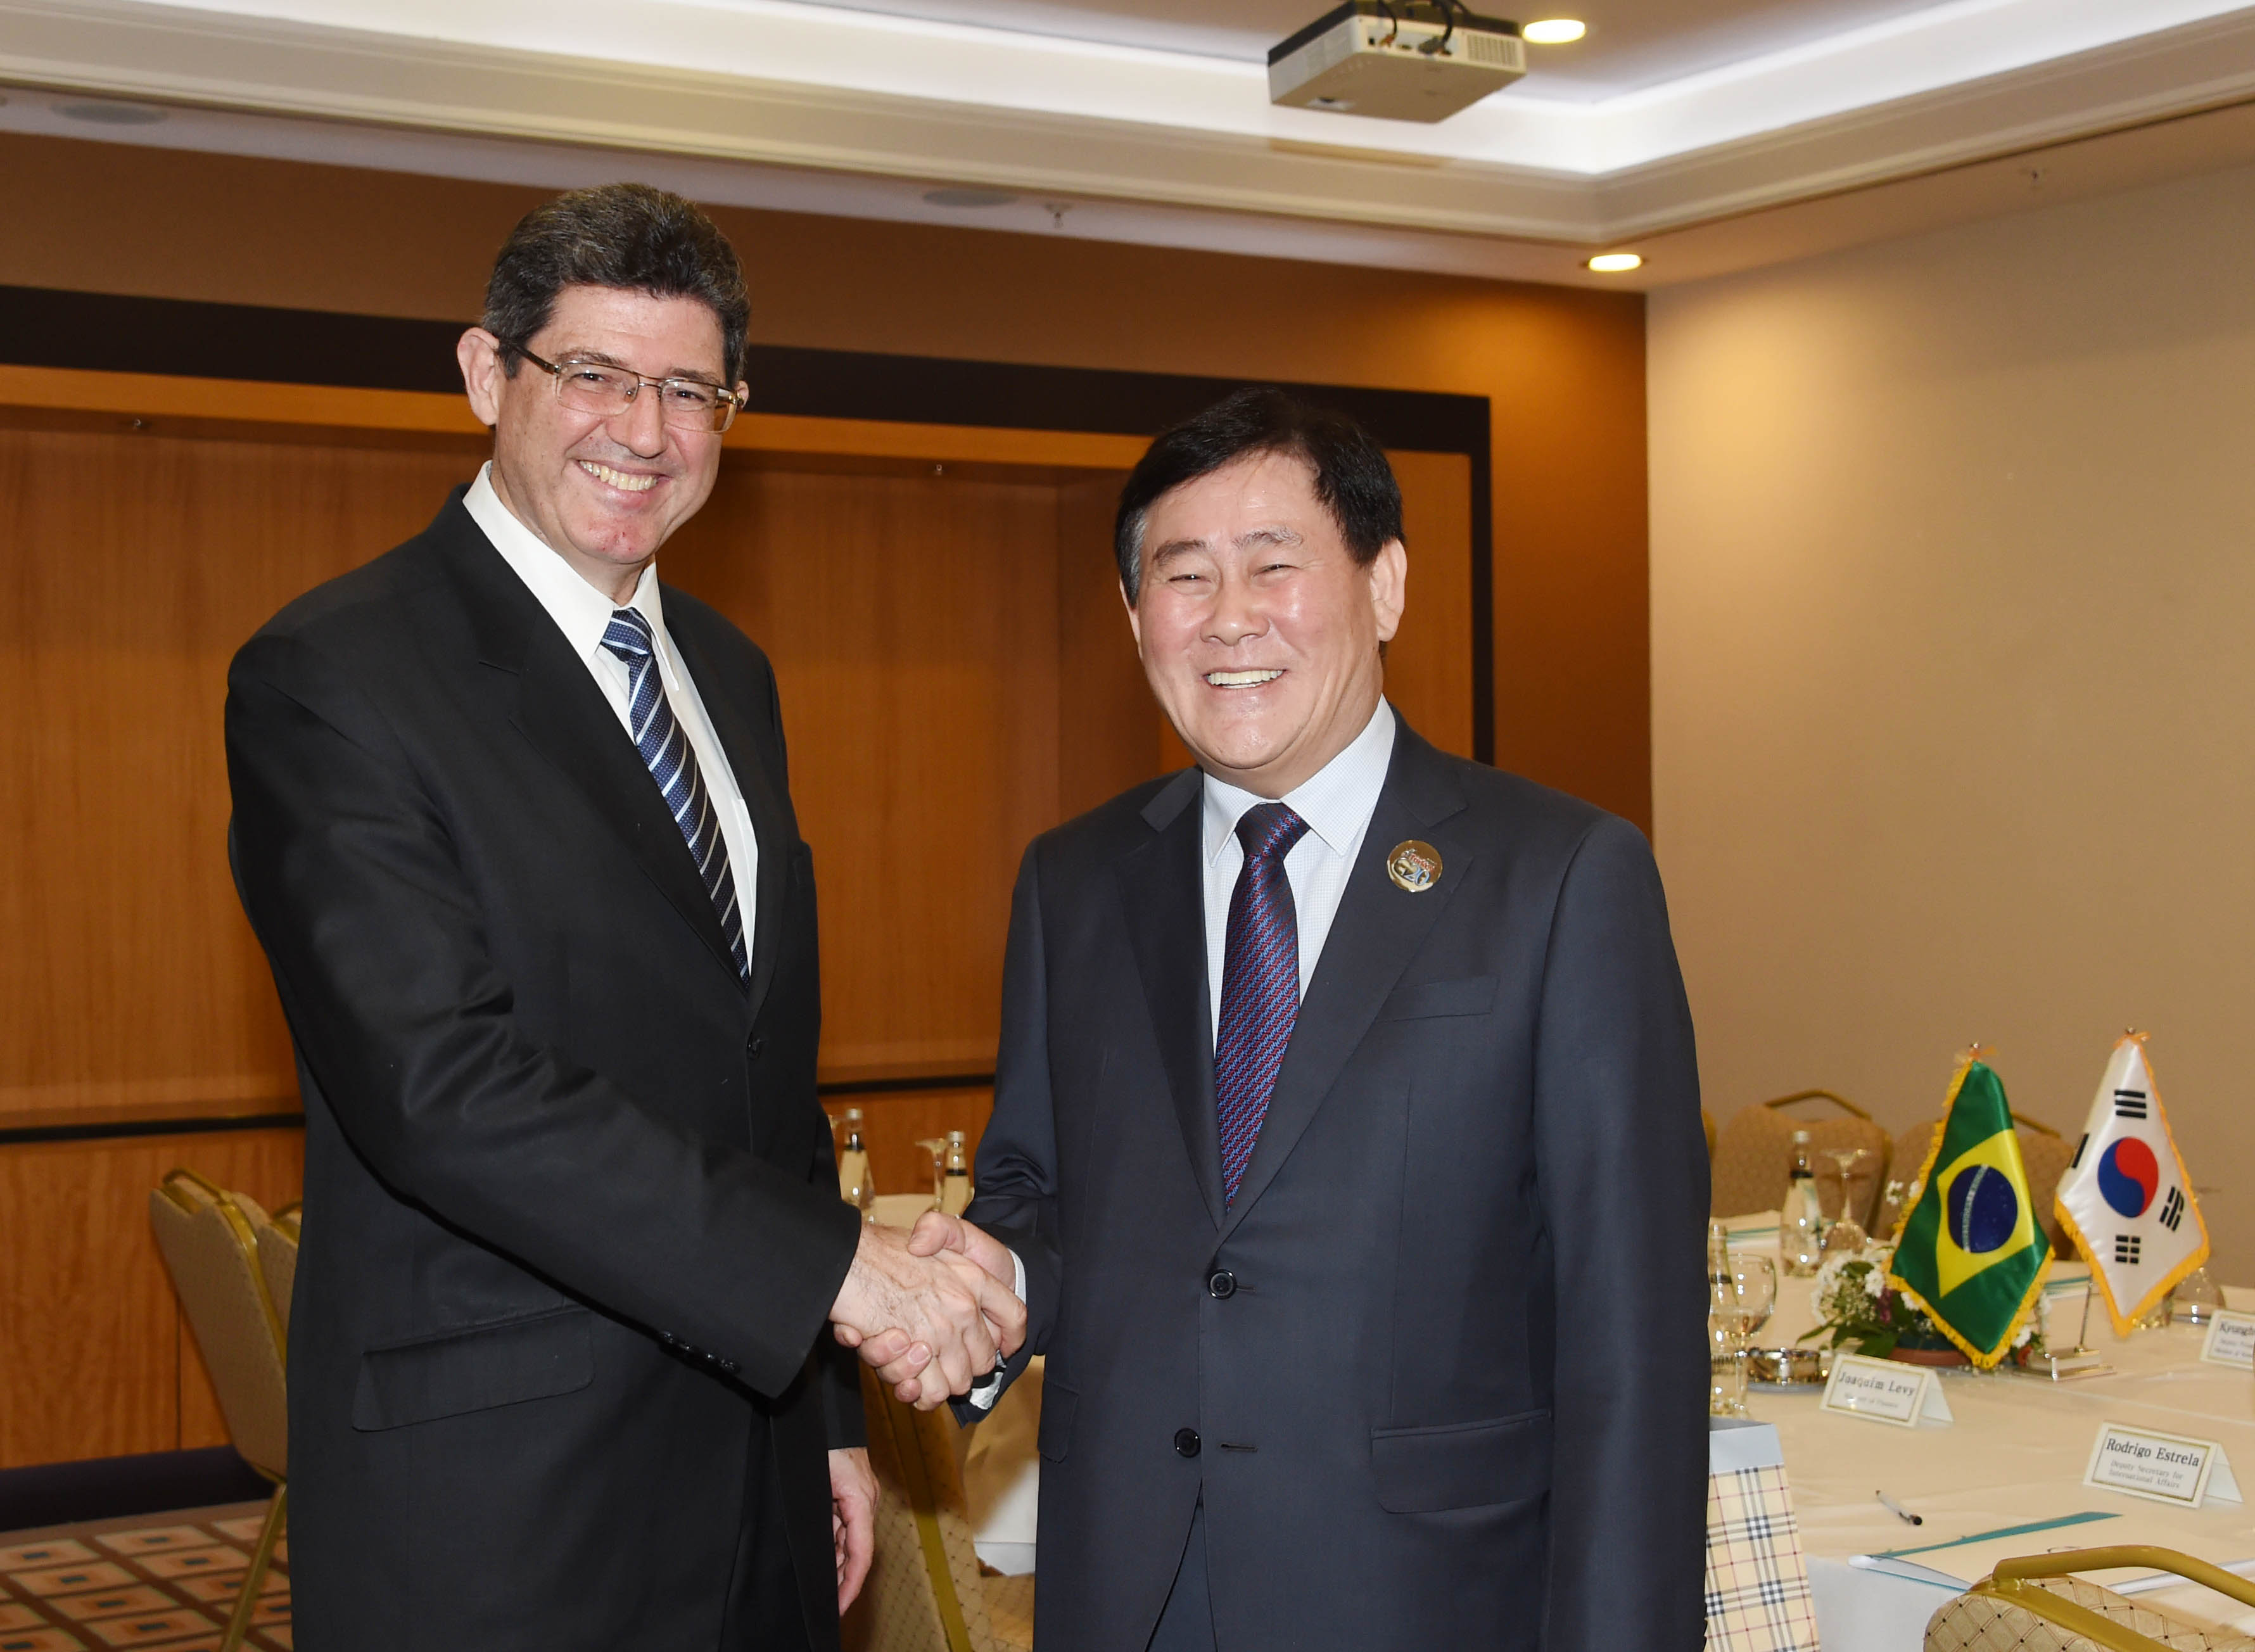 Deputy Prime Minister Choi meets with Brazilian Finance Minister Joaquim Levy in Ankara, Turkey